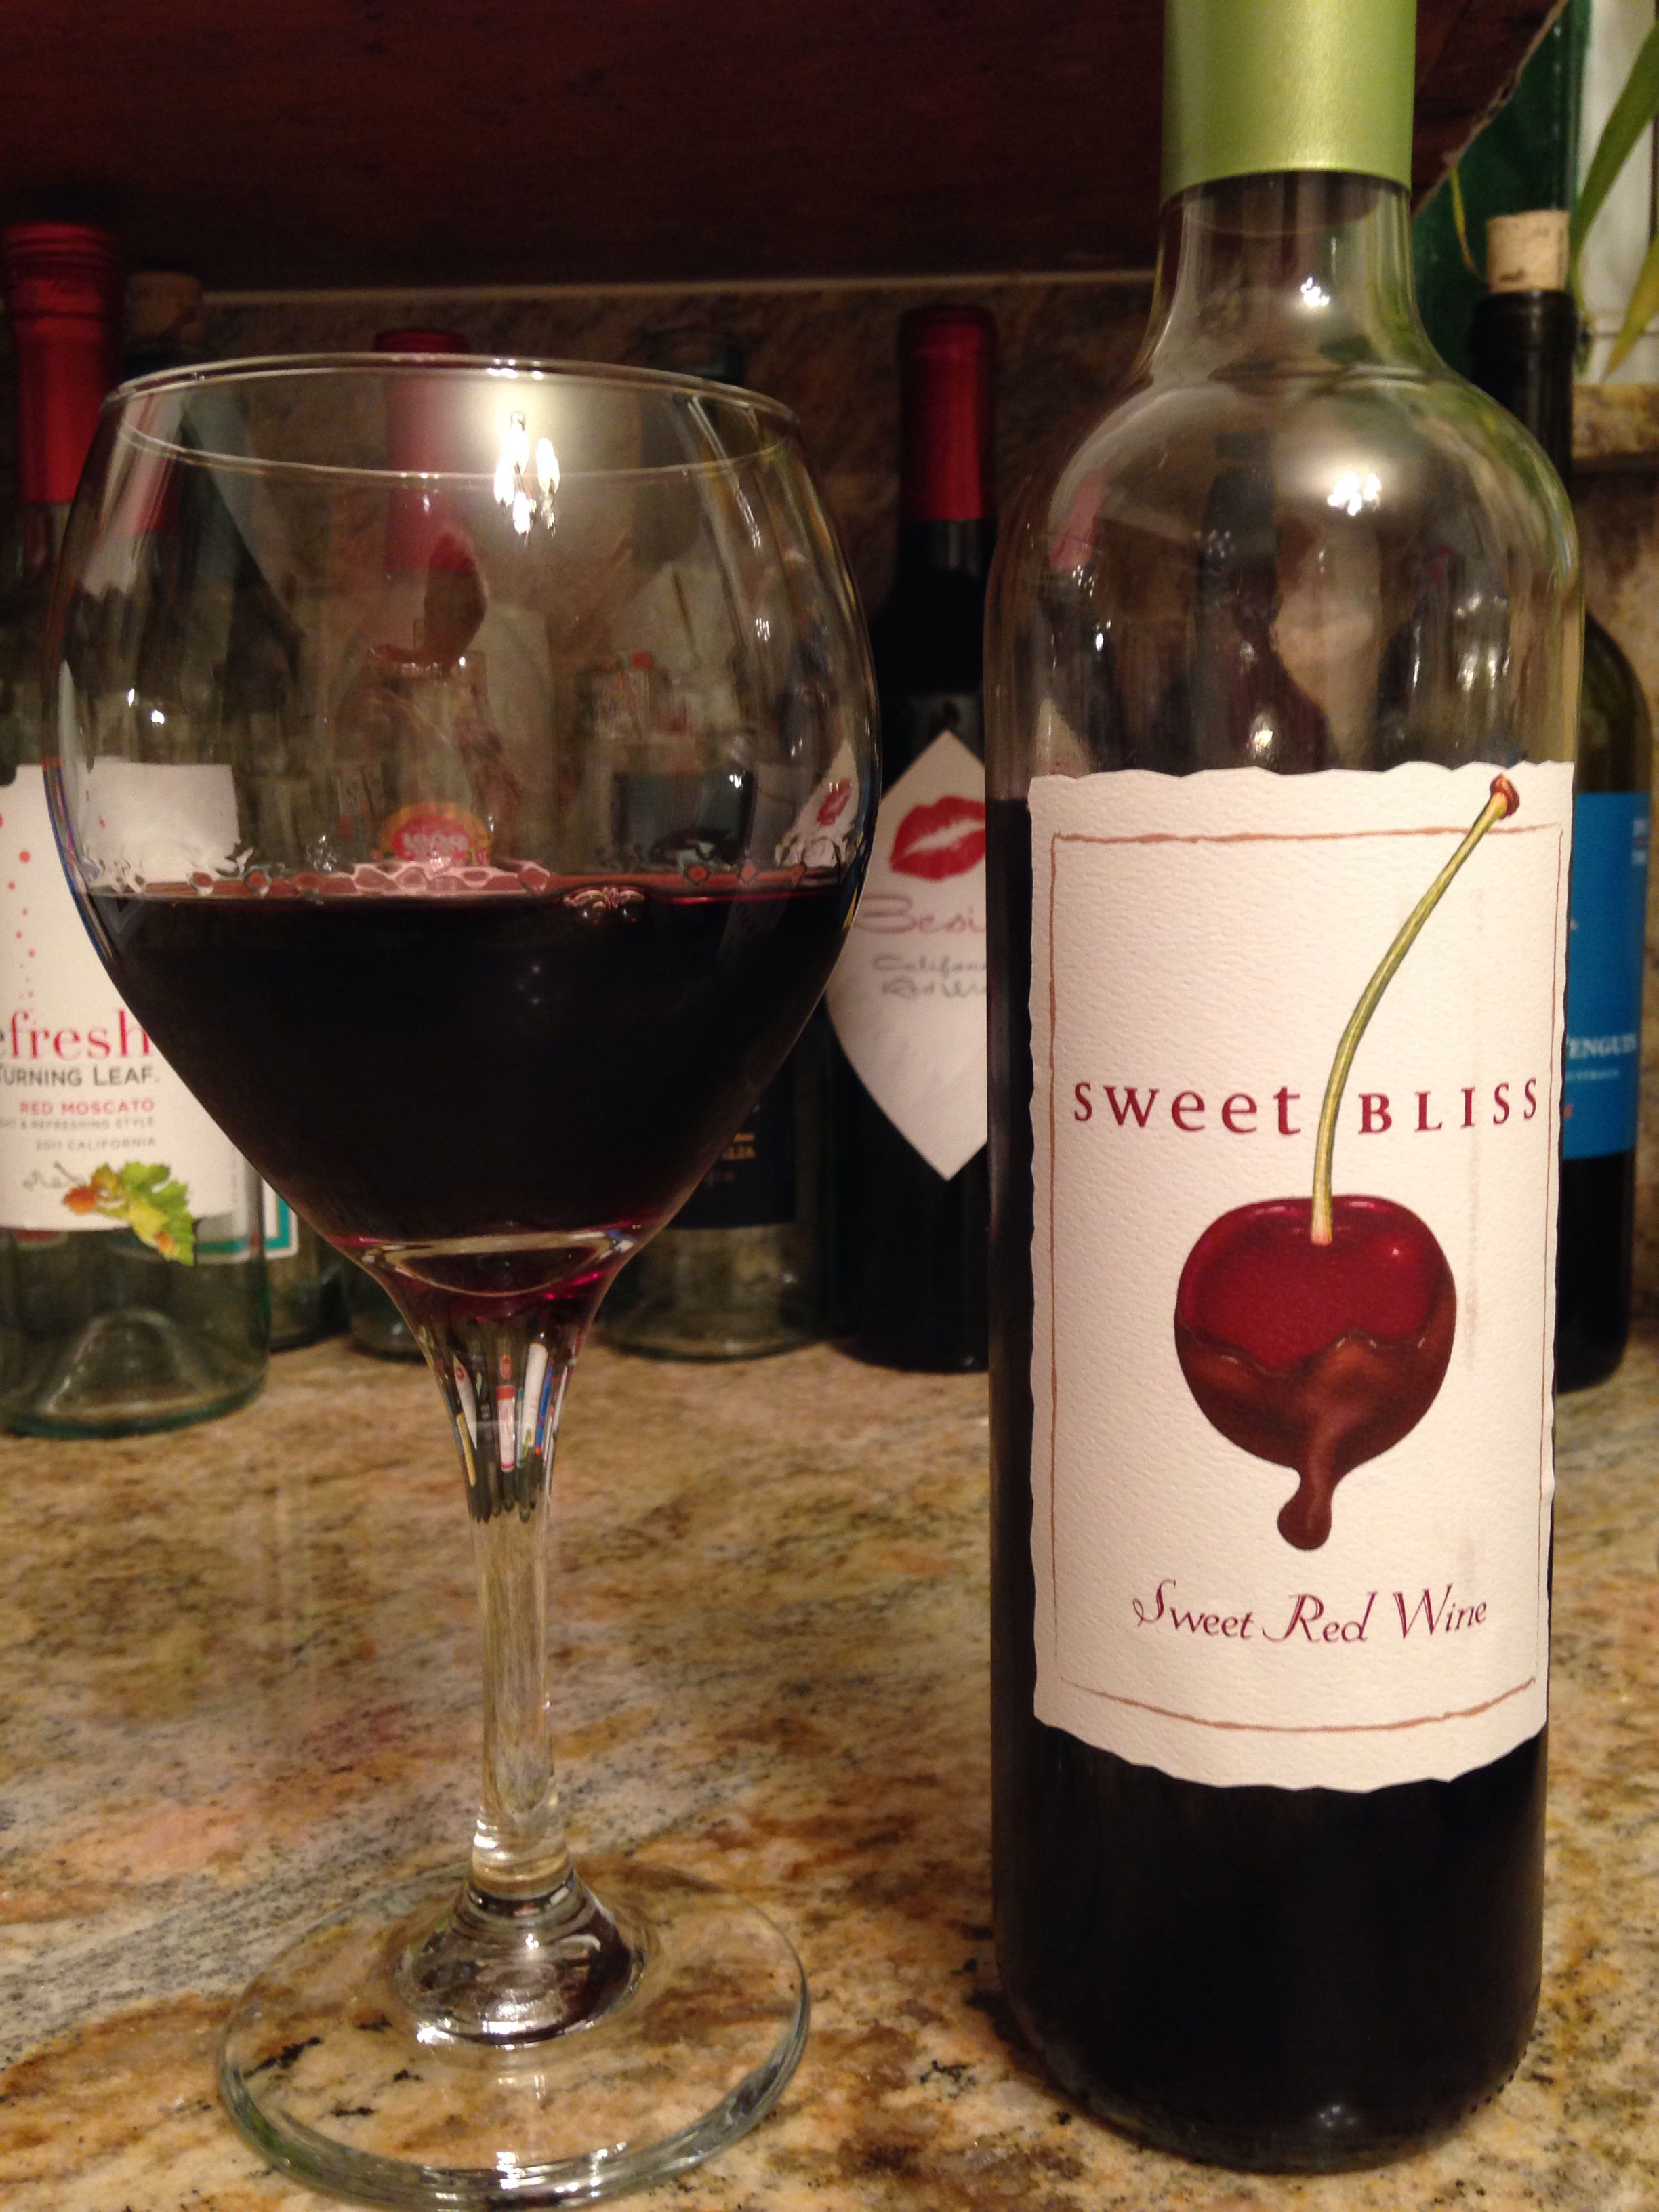 28 best Sweet Red Wine images on Pinterest | Wine, Sweet red wines ...